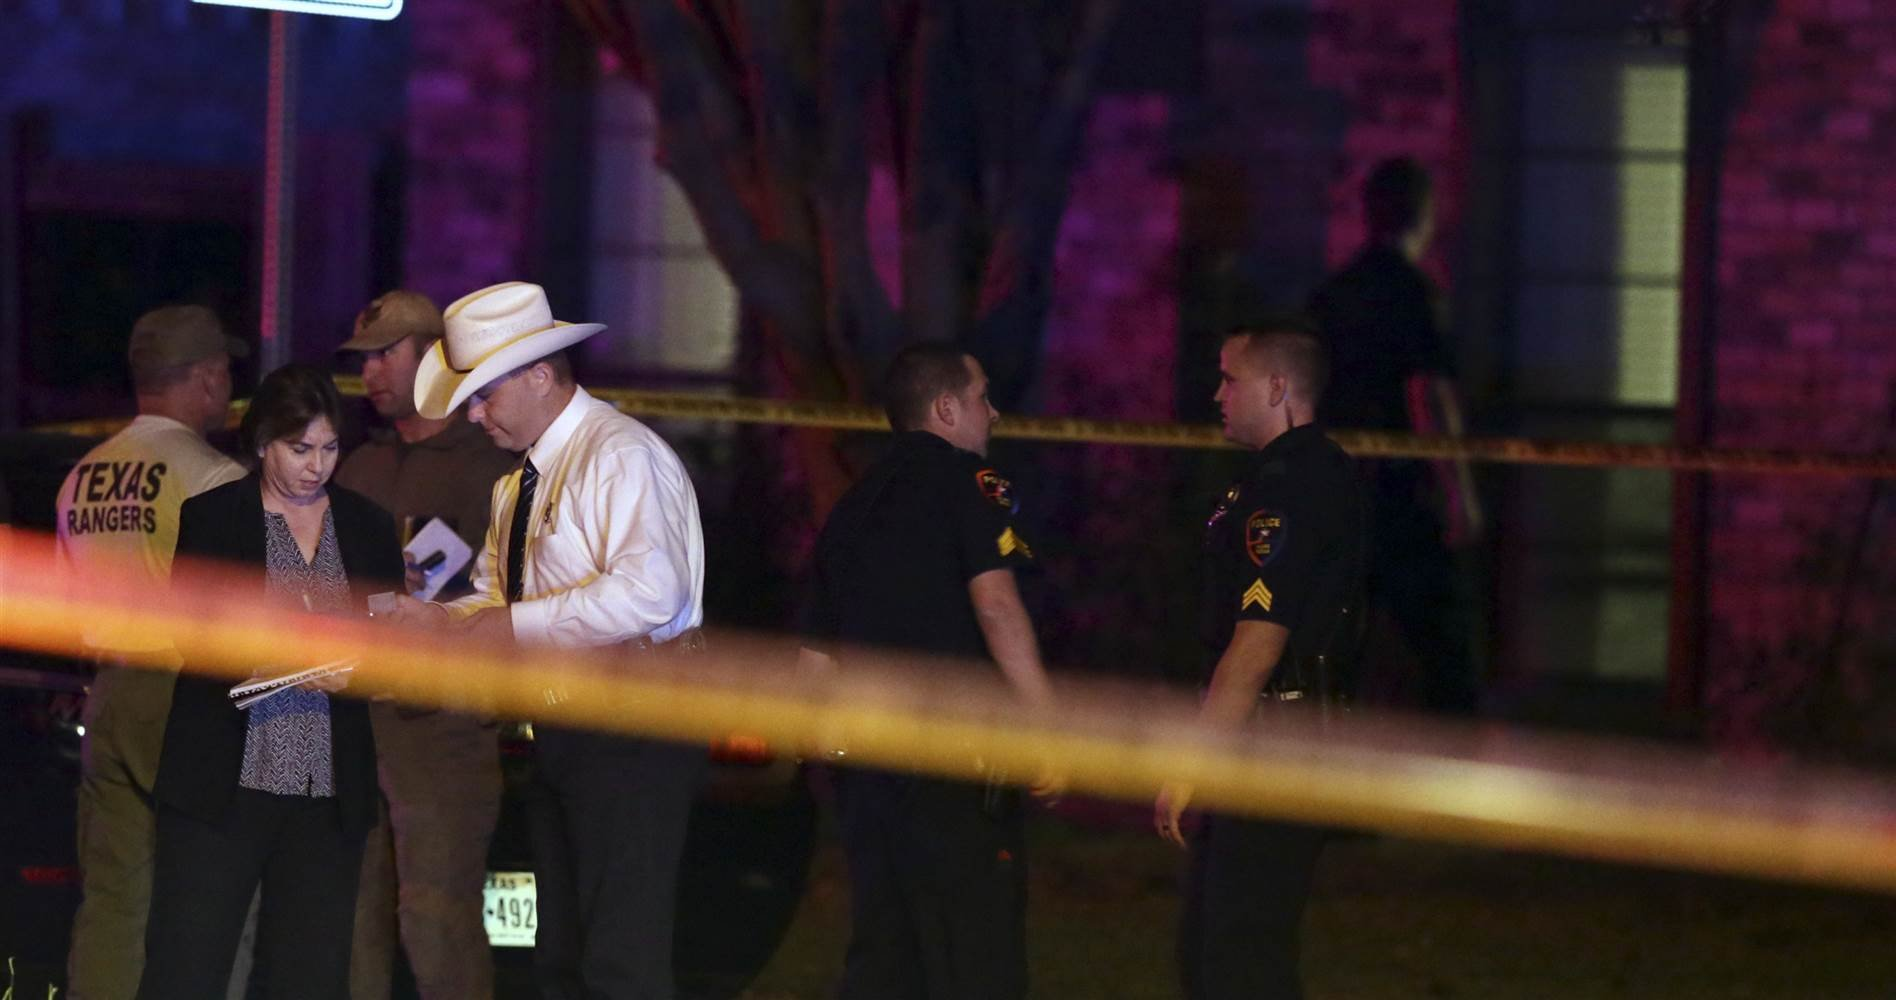 Texas shooting: eight killed, including gunman, at house party